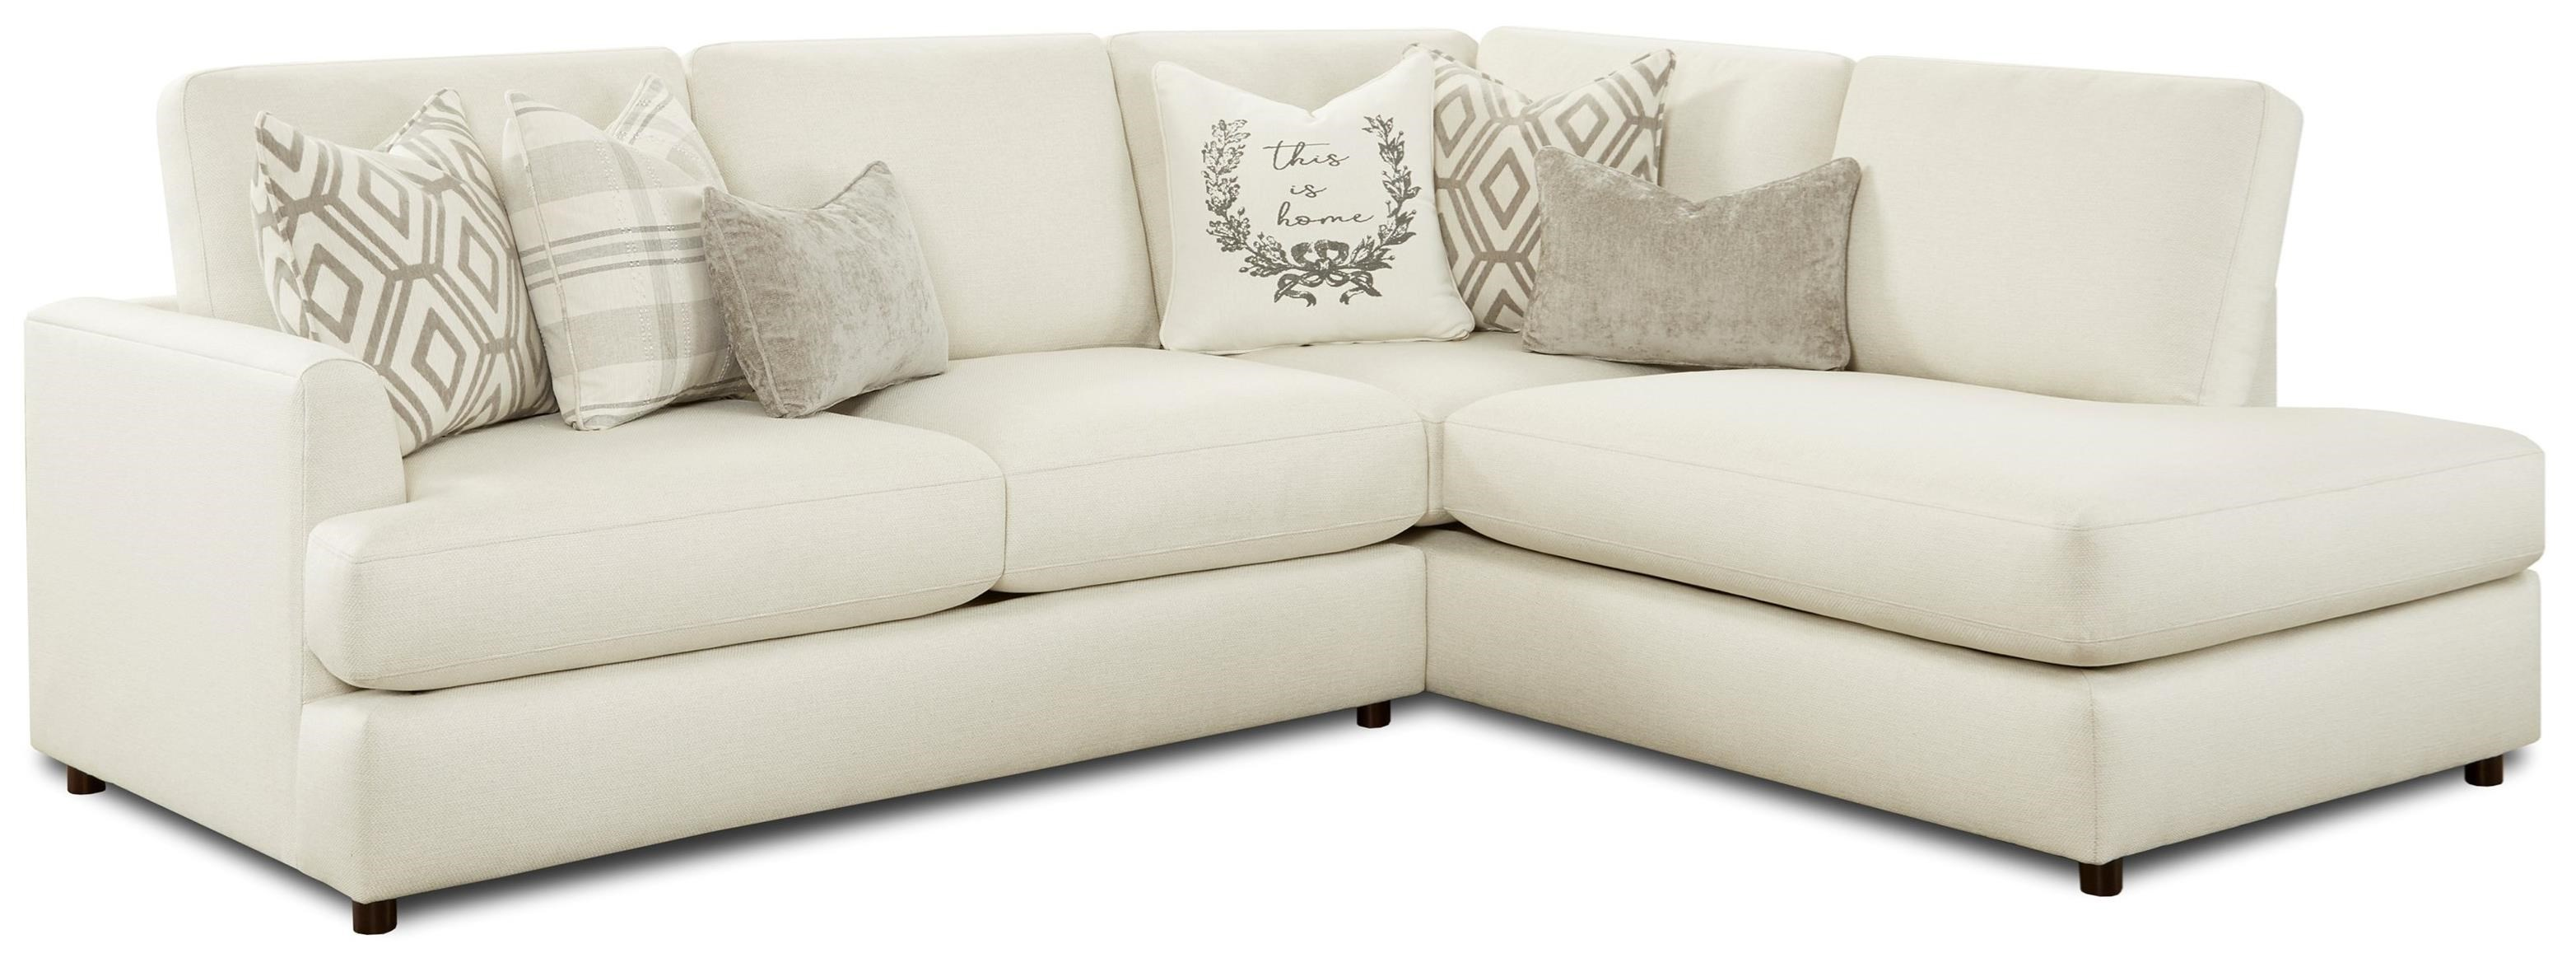 23-00 2-Piece Sectional with Chaise by Fusion Furniture at Furniture Superstore - Rochester, MN